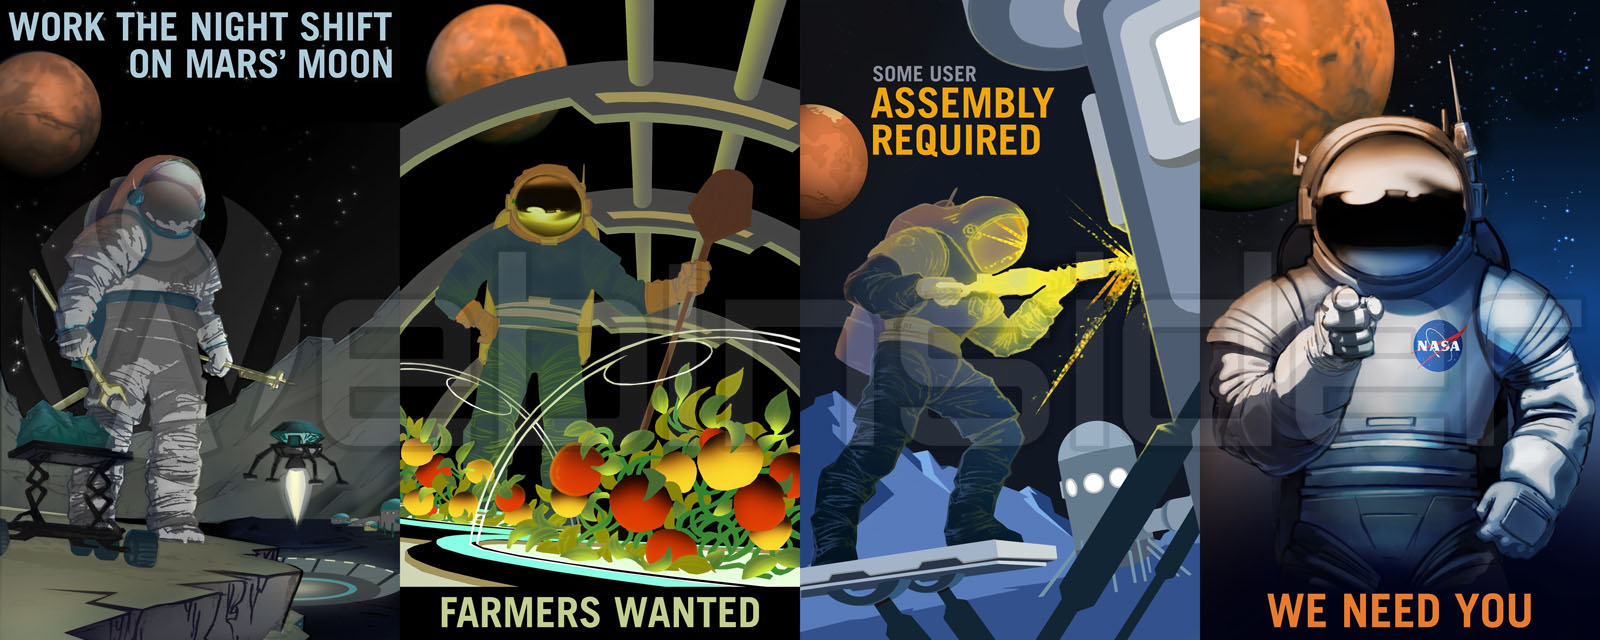 nasa_mars-explorers-wanted_ posters_1x4_01